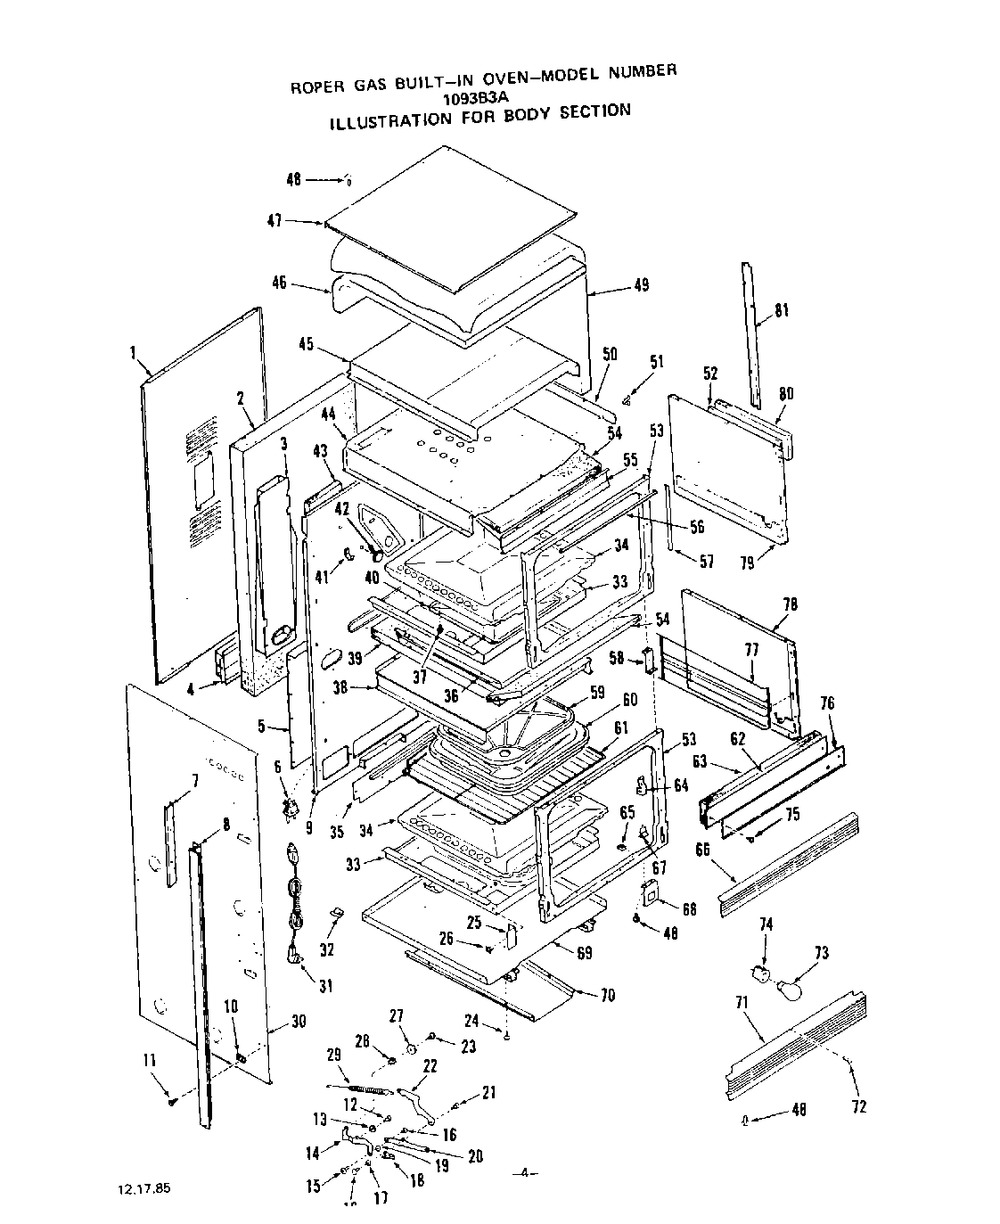 Diagram for 1093B3A